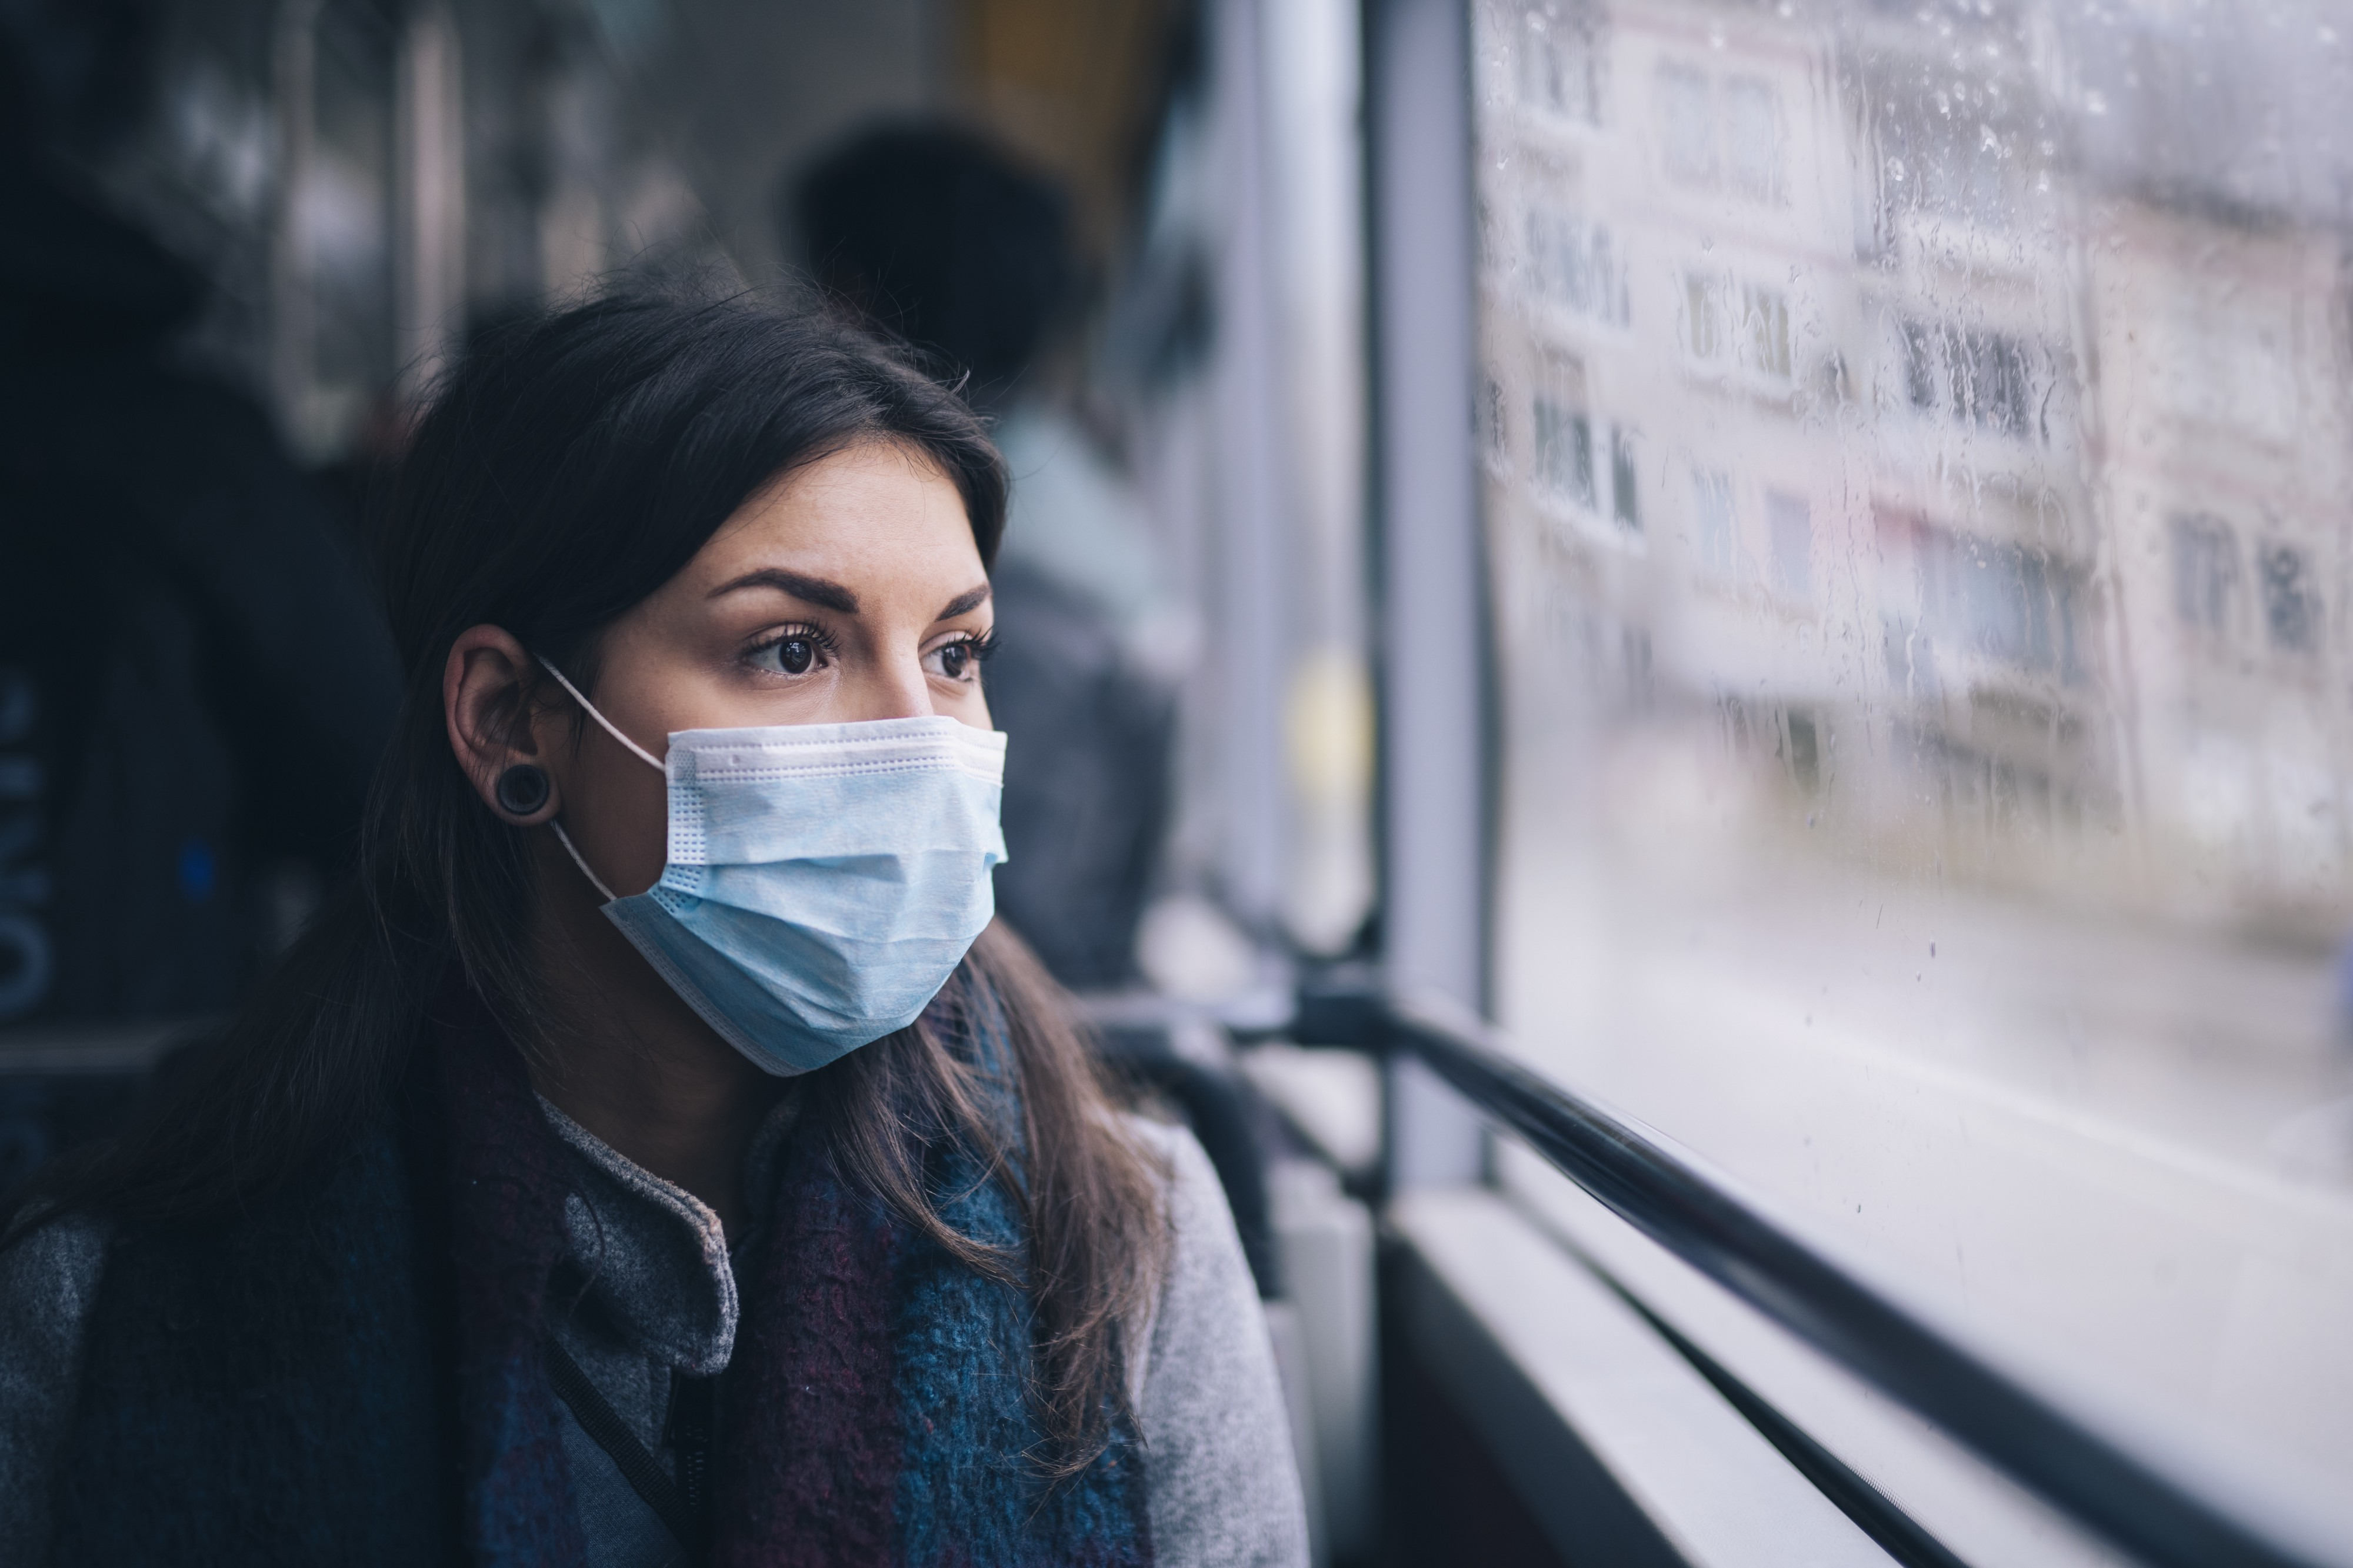 Woman wearing face mask riding the bus.